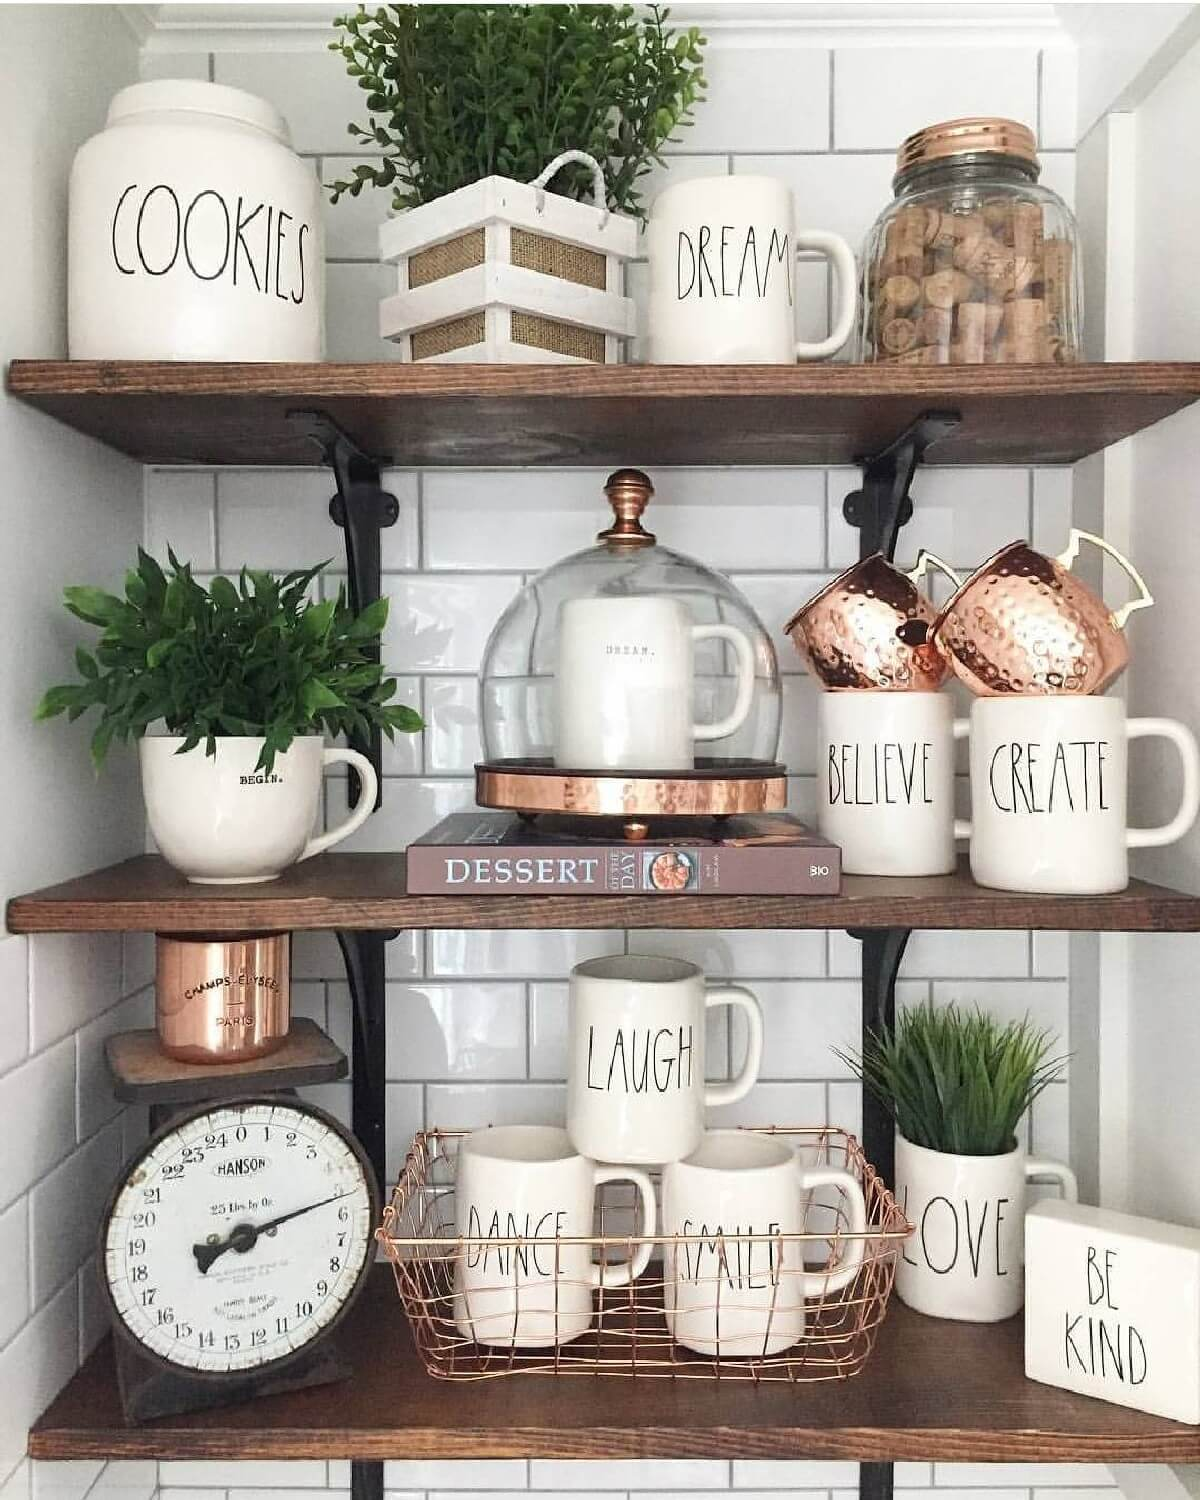 Open Kitchen Shelves Decorating Ideas: 26 Best Farmhouse Shelf Decor Ideas And Designs For 2019